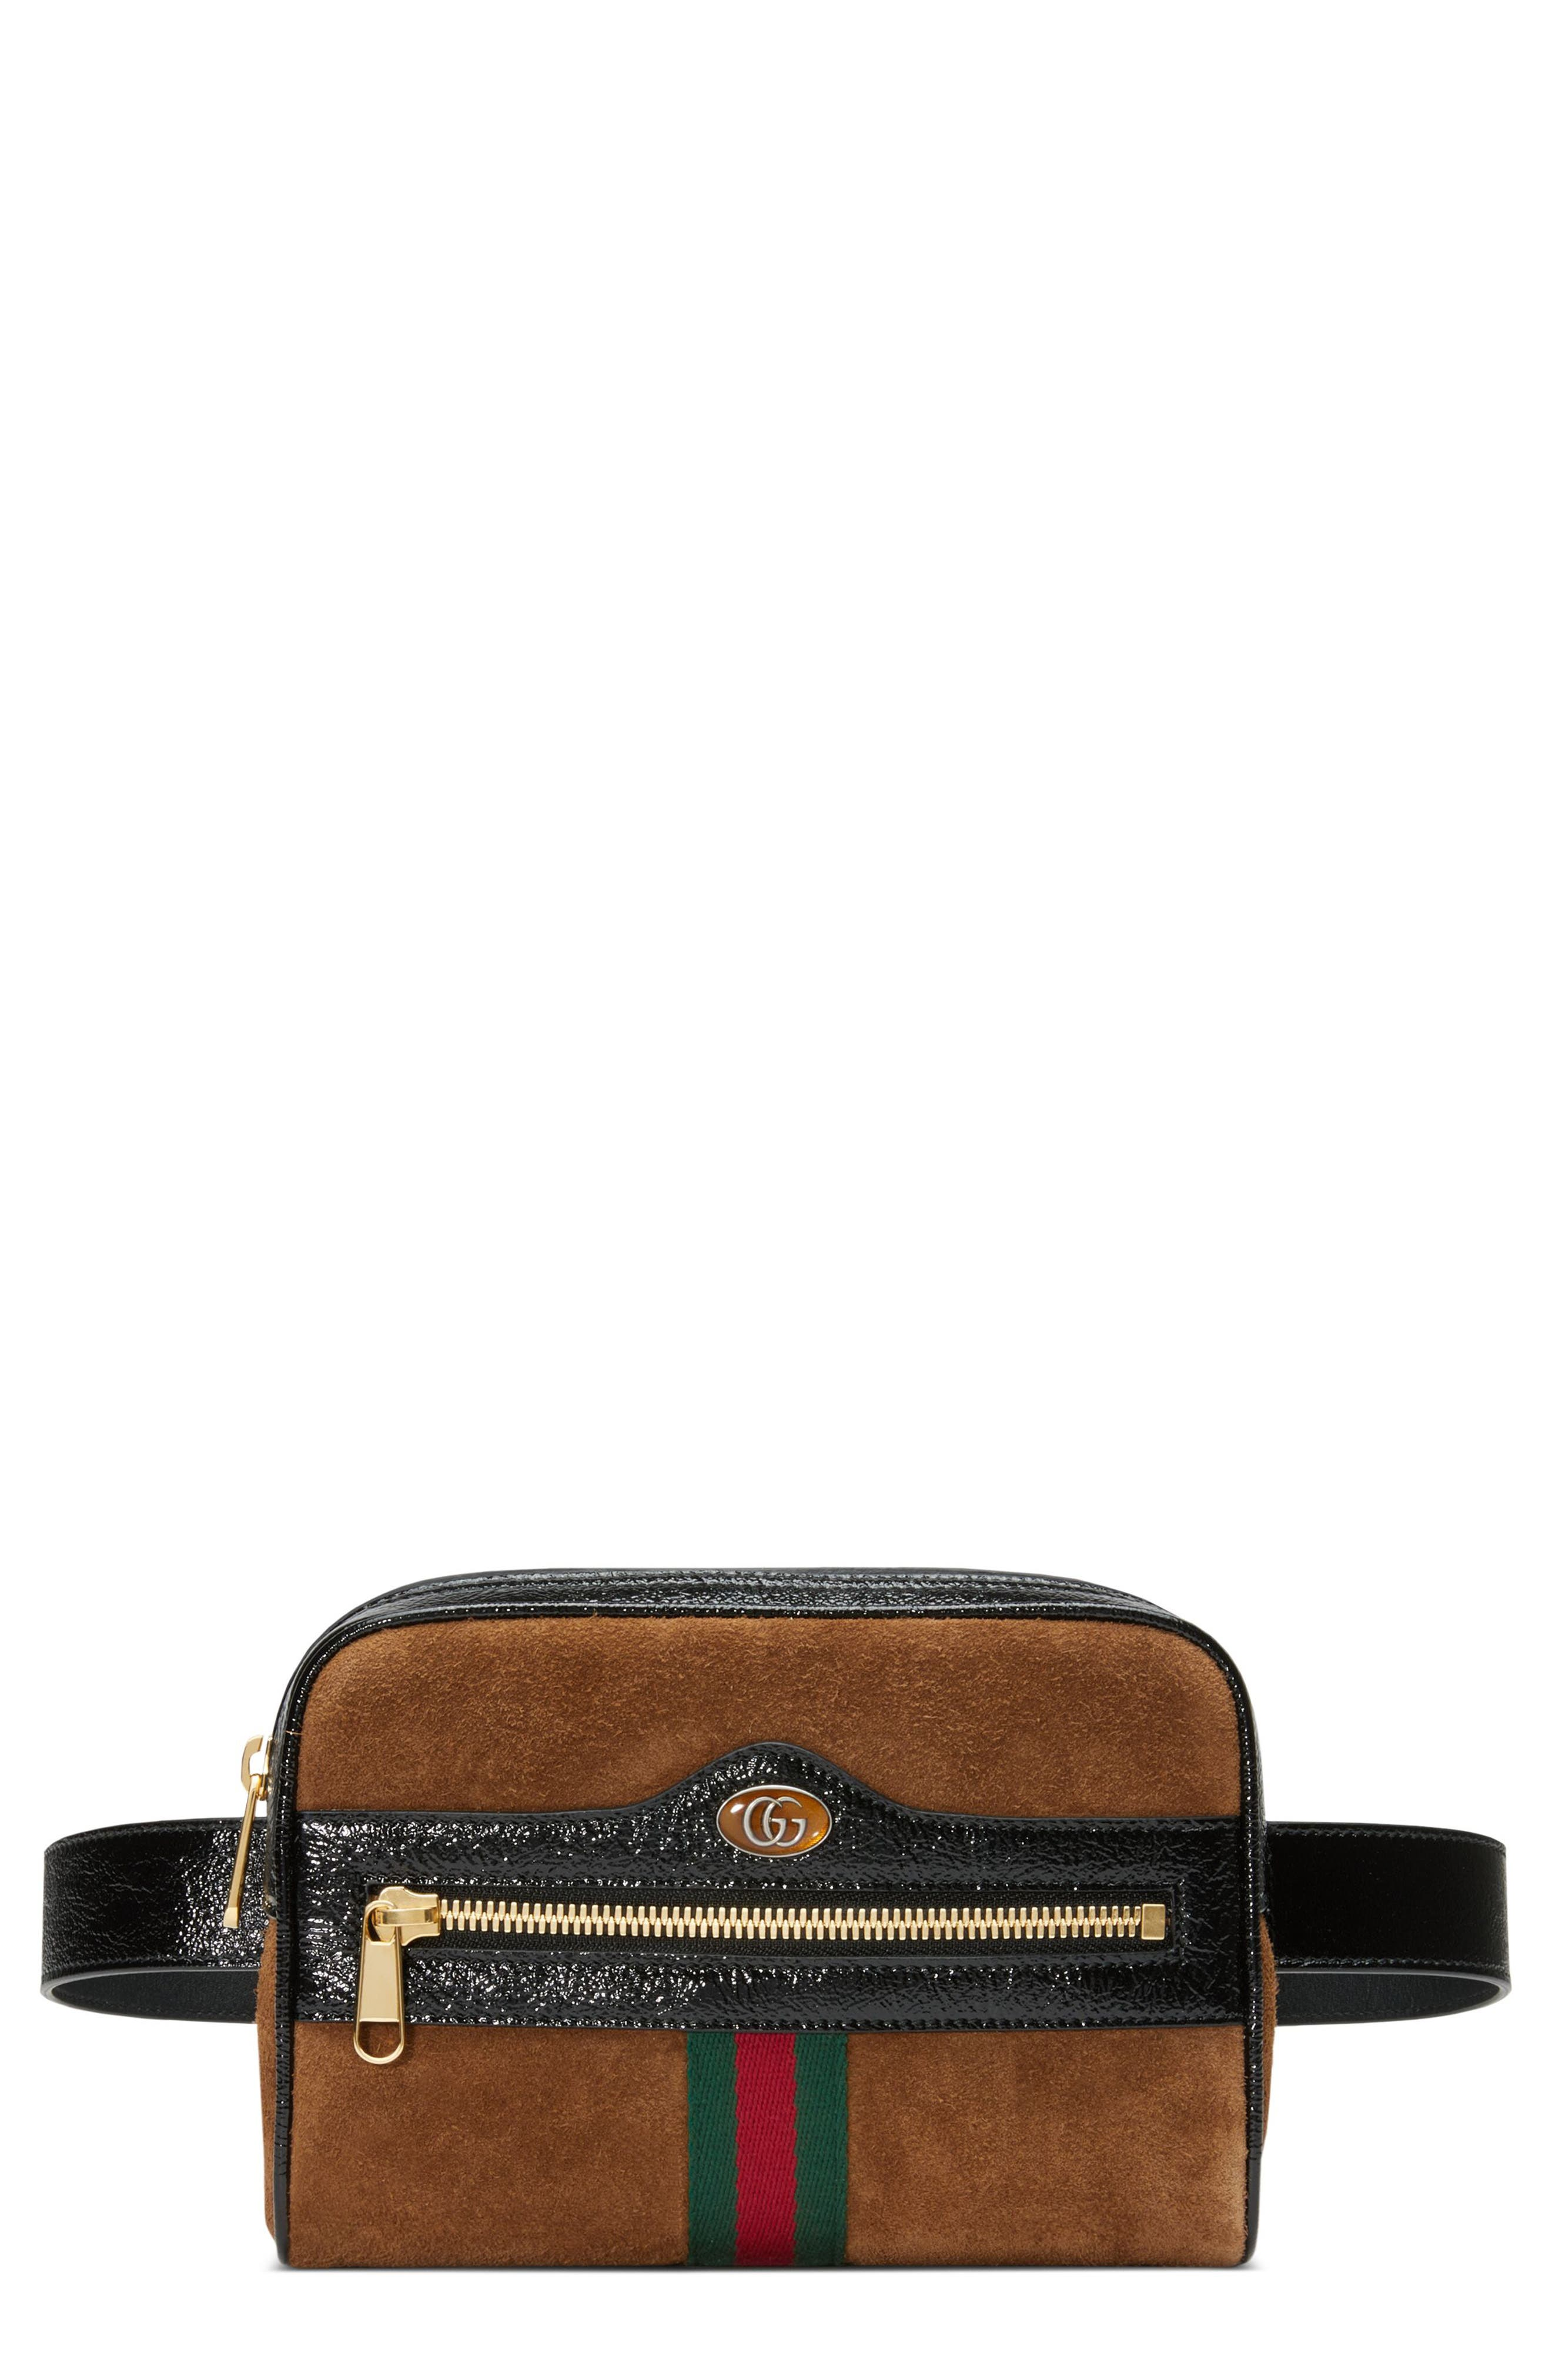 Ophidia Small Suede Belt Bag,                             Main thumbnail 1, color,                             NOCCIOLA/ NERO/ VERT RED